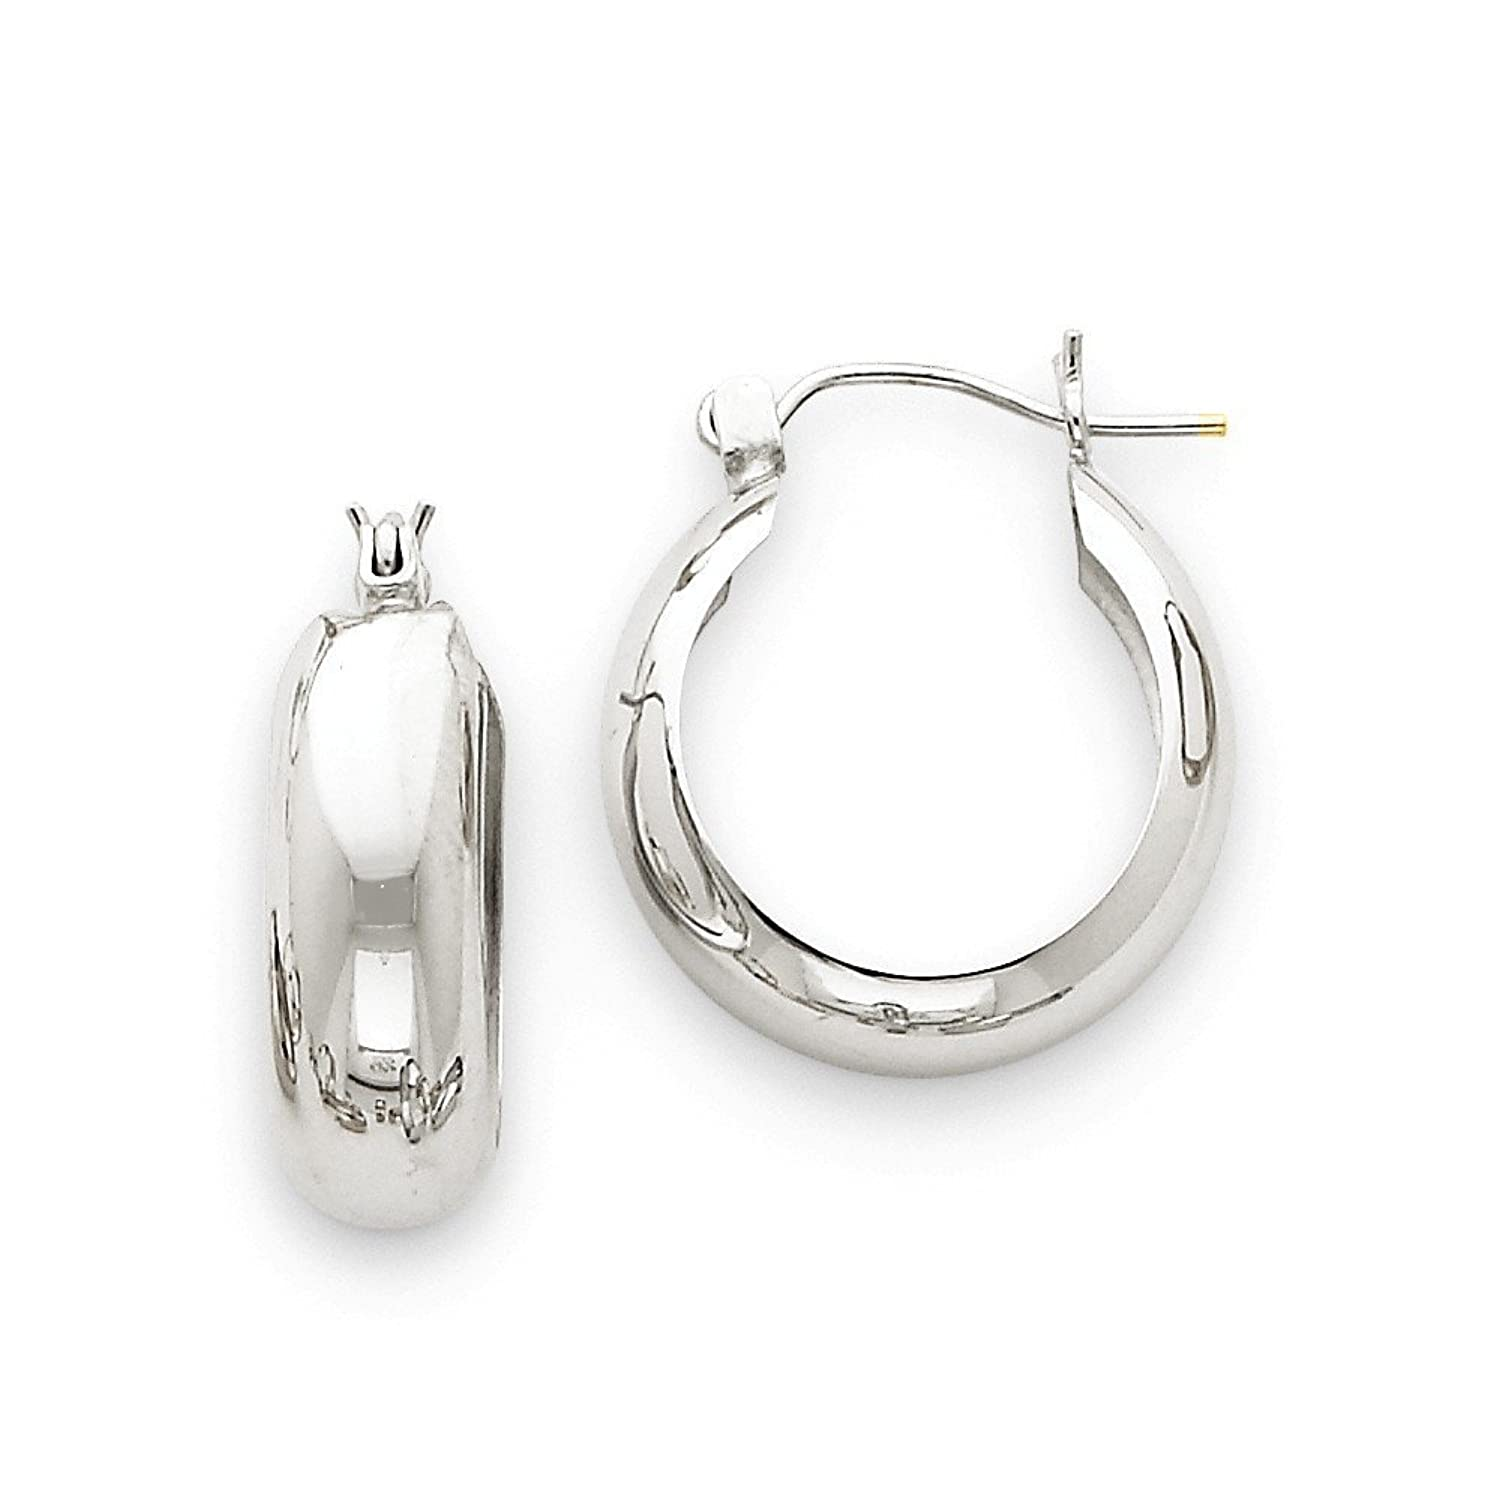 14k Gold White Gold Hoop Earrings (0.55 in x 0.28 in)